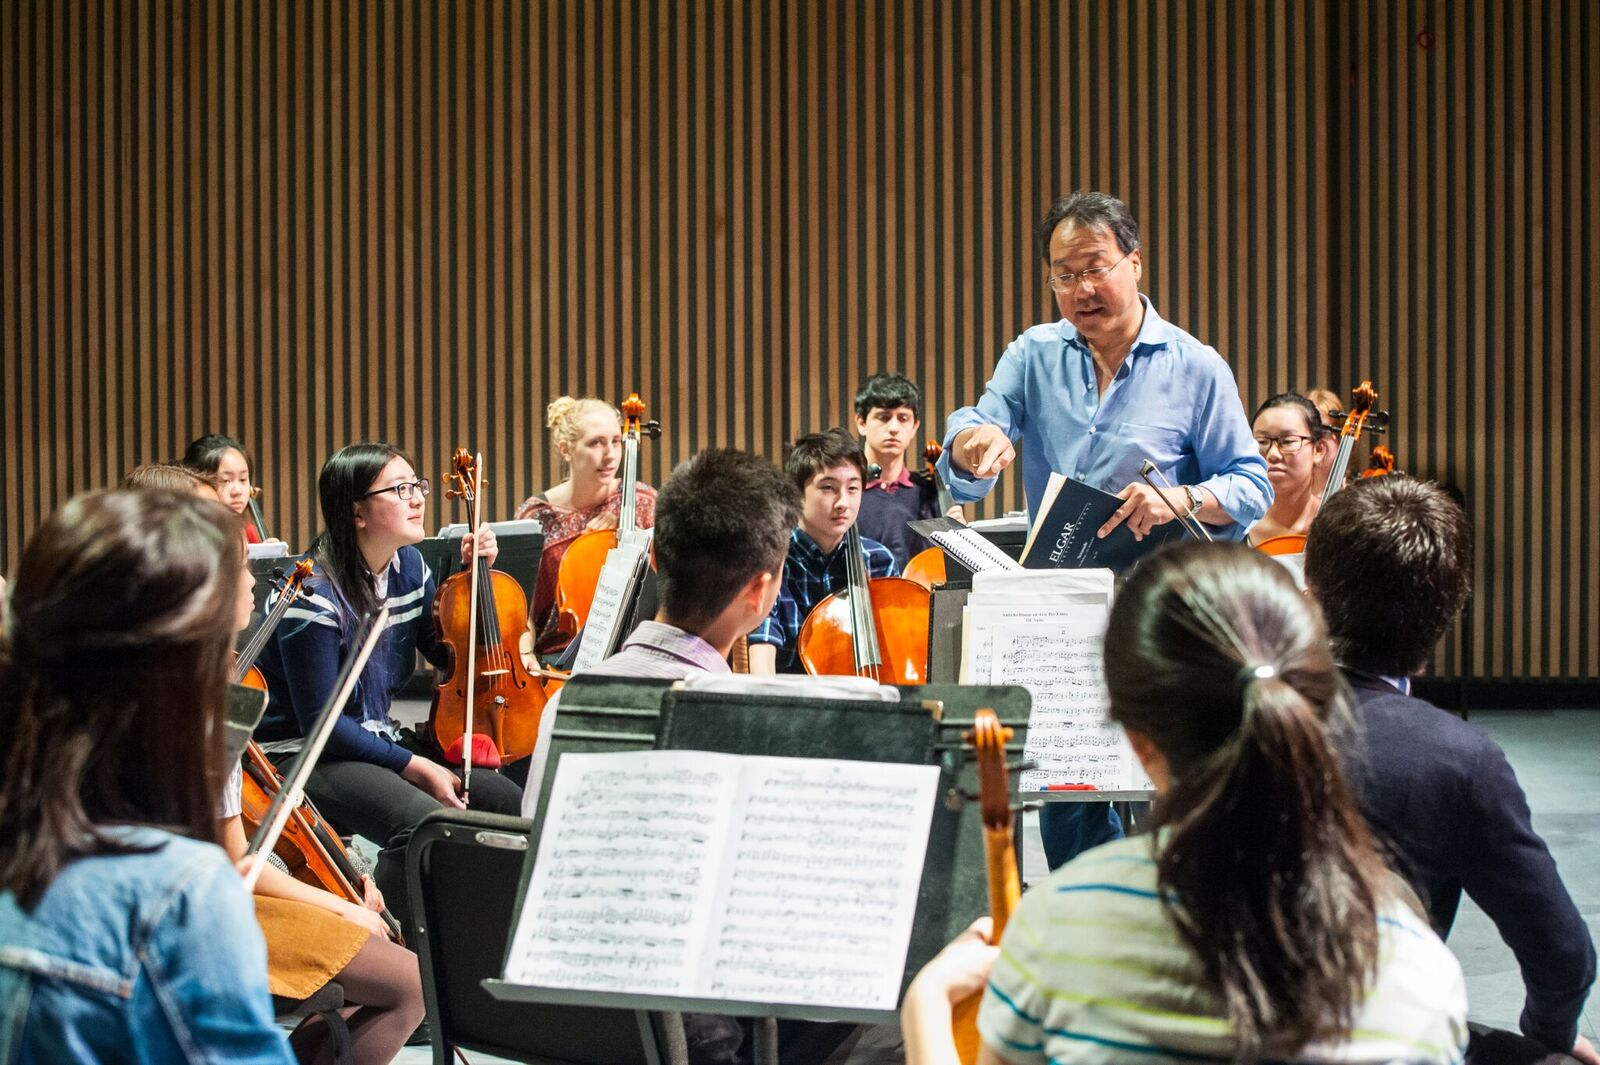 Yo Yo Ma Masterclass with the VSO School of Music. | Aaron Aubrey for the VSO